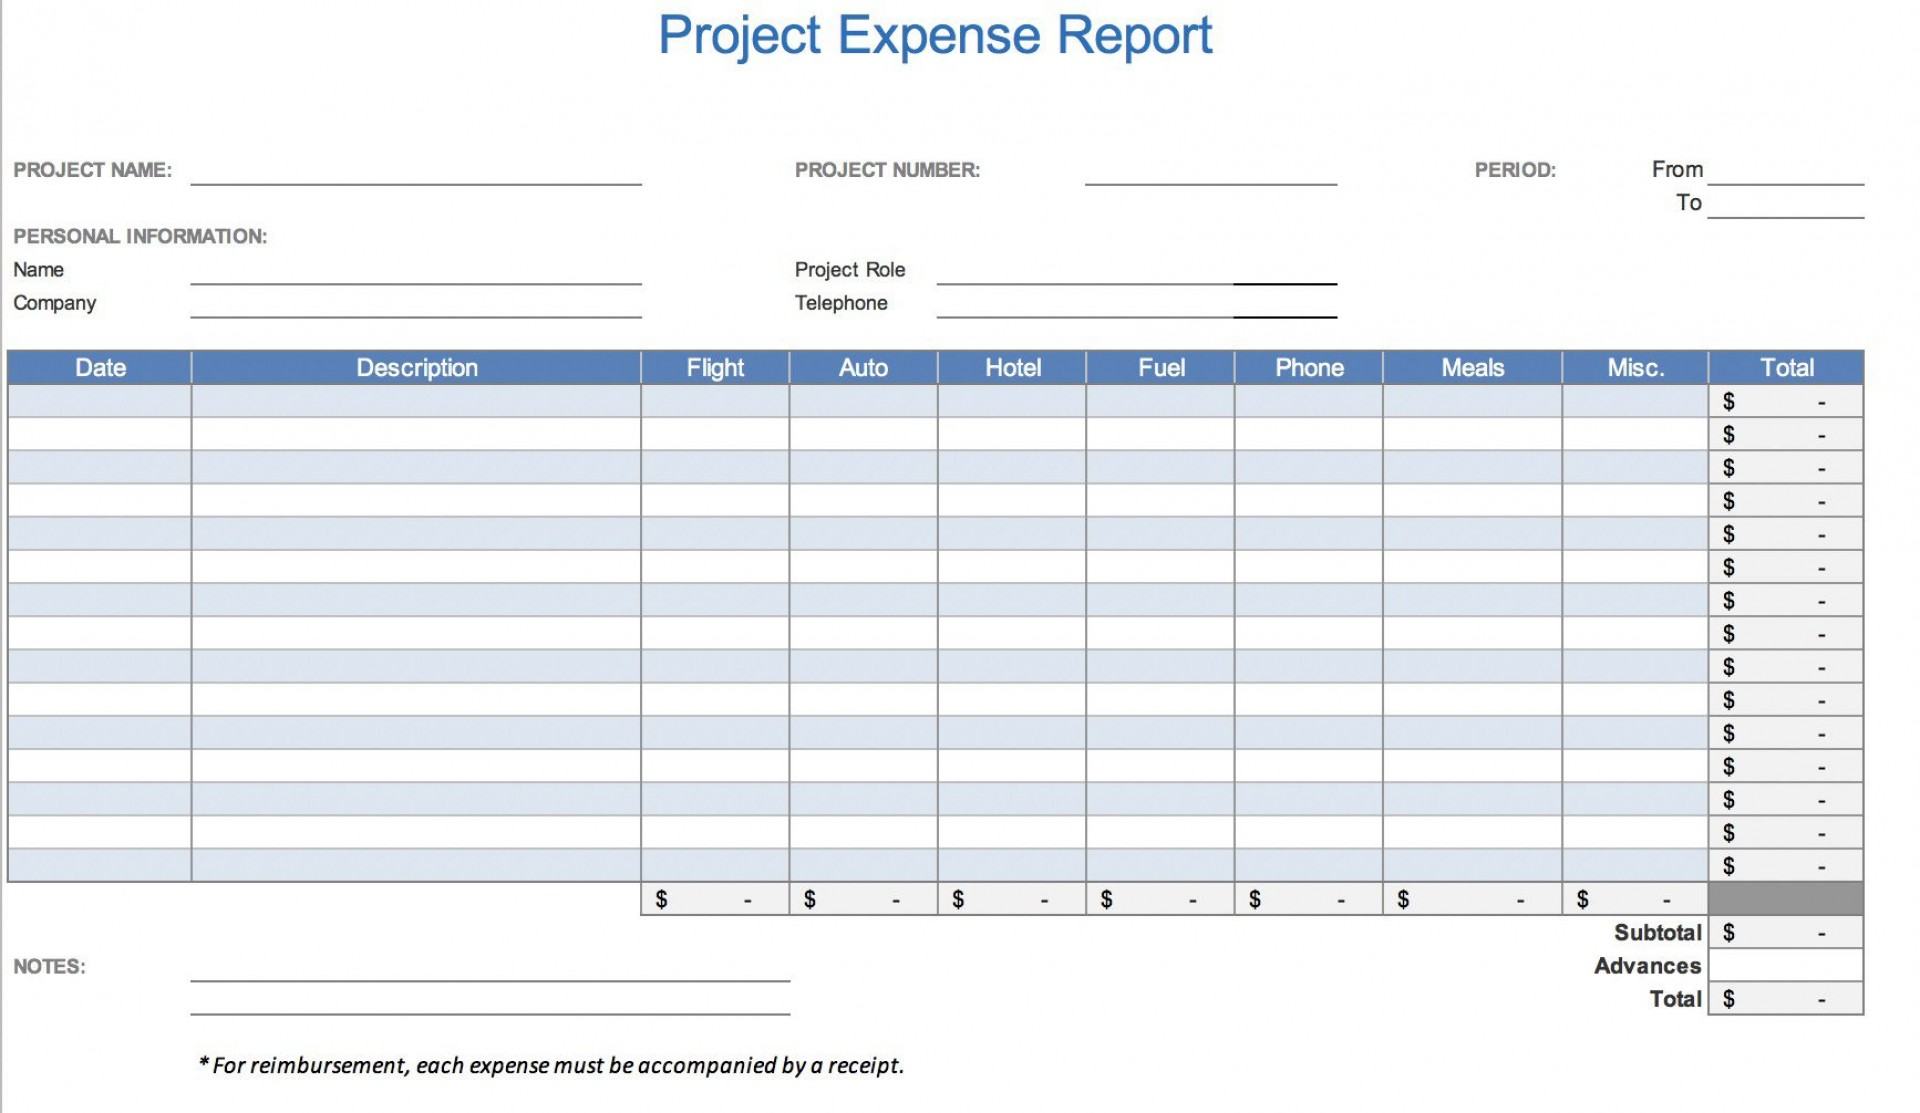 008 Archaicawful Travel Expense Report Template Example  Format Excel Free1920